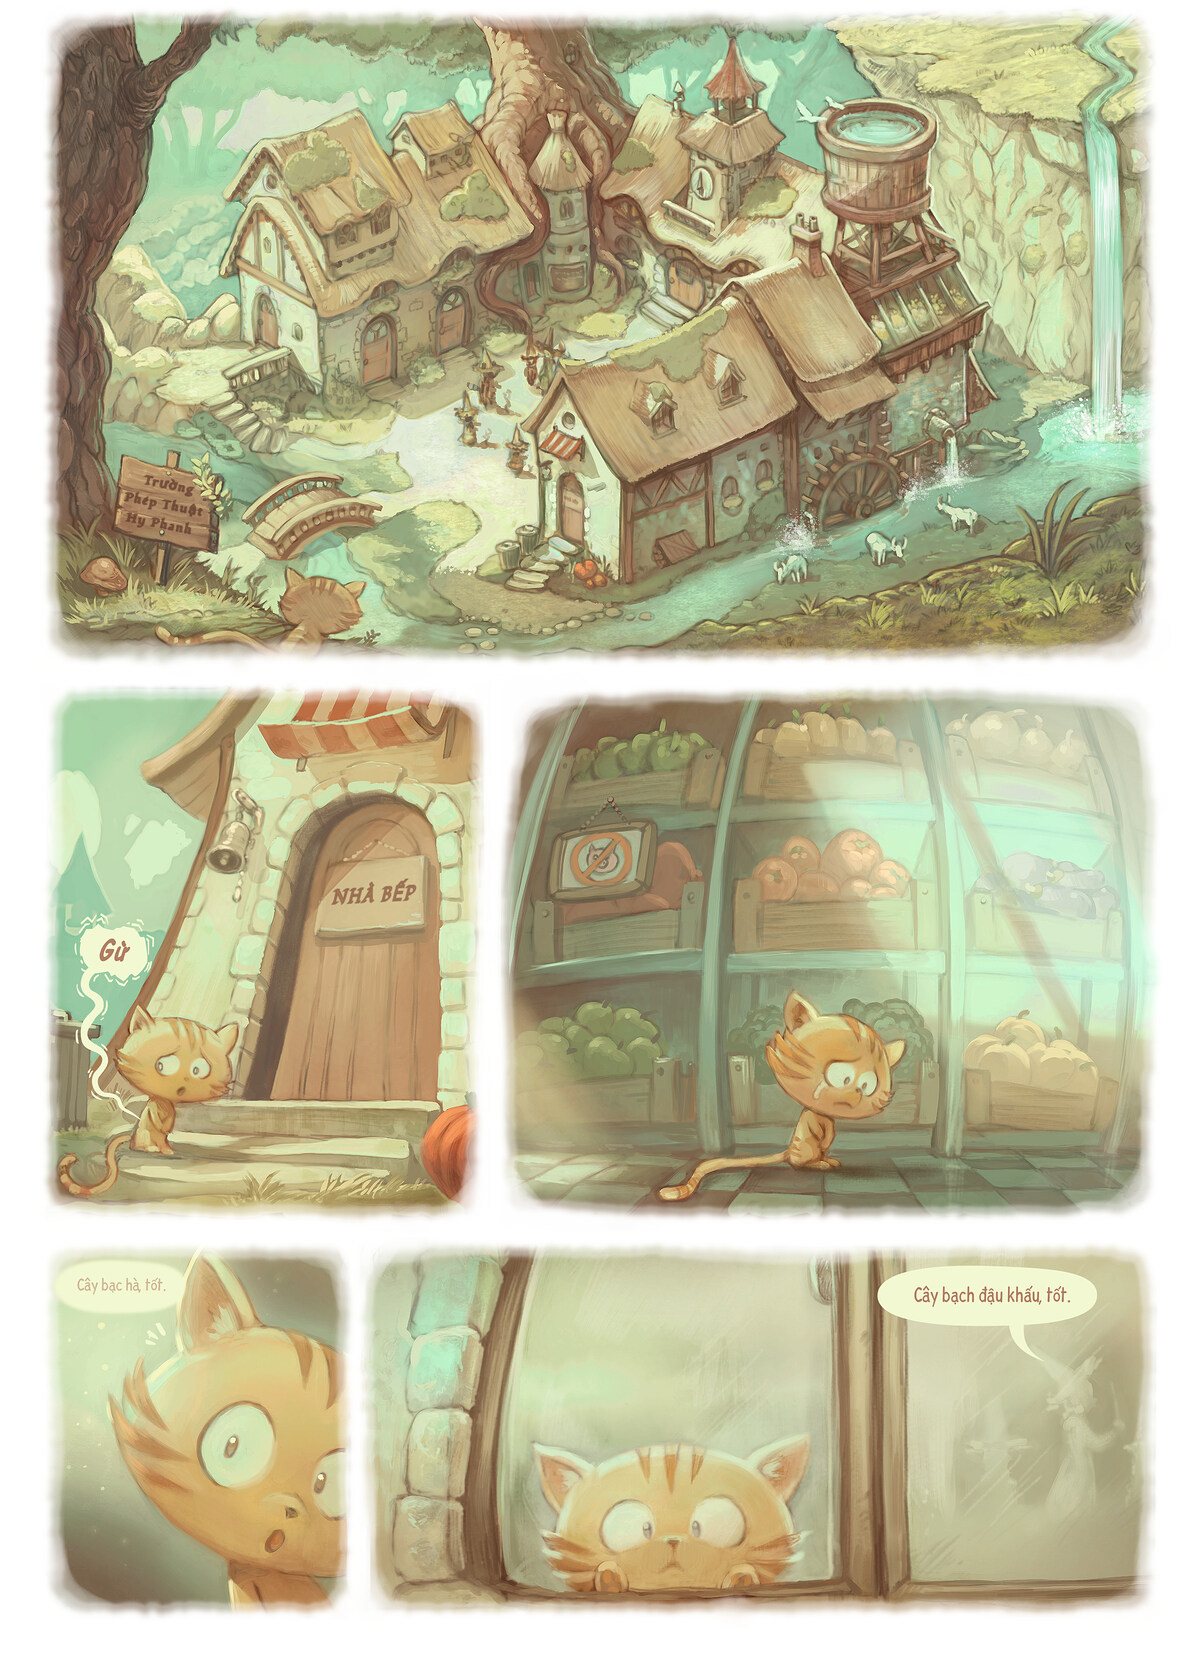 A webcomic page of Pepper&Carrot, Tập 18 [vi], trang 2